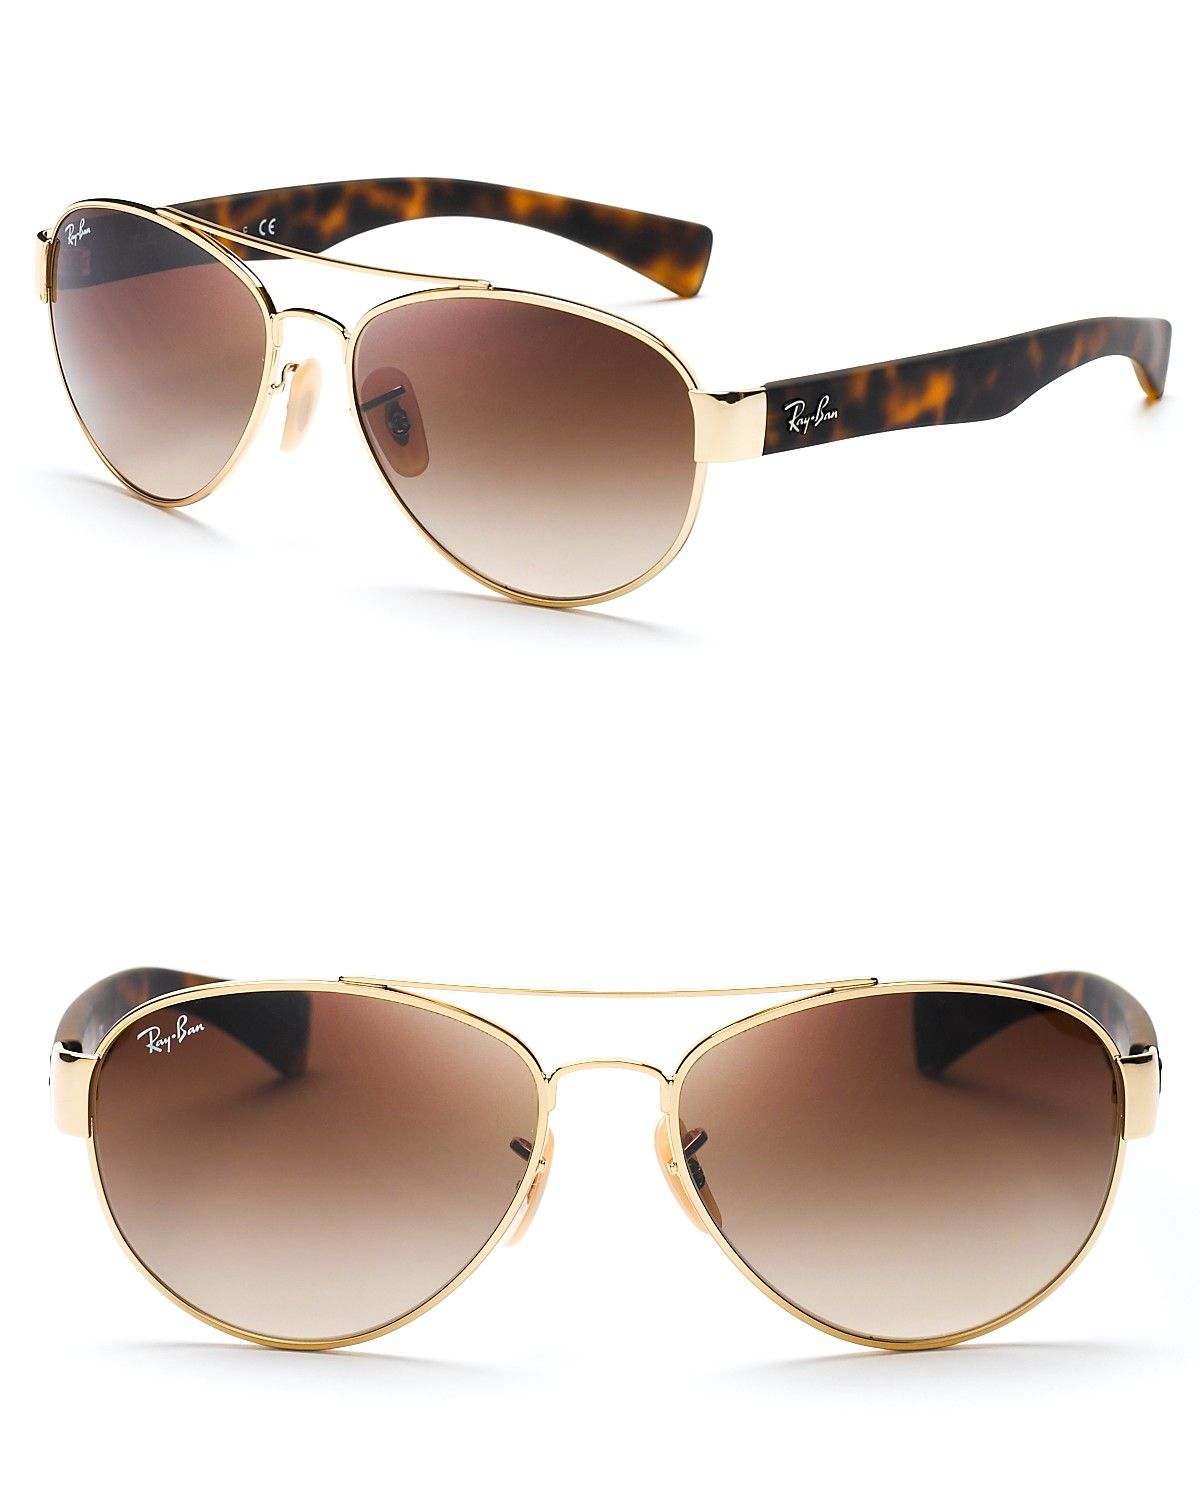 Ray-Ban Rounded Aviator Sunglasses   Bloomingdales. i want this one hihi c6e9471e3fac